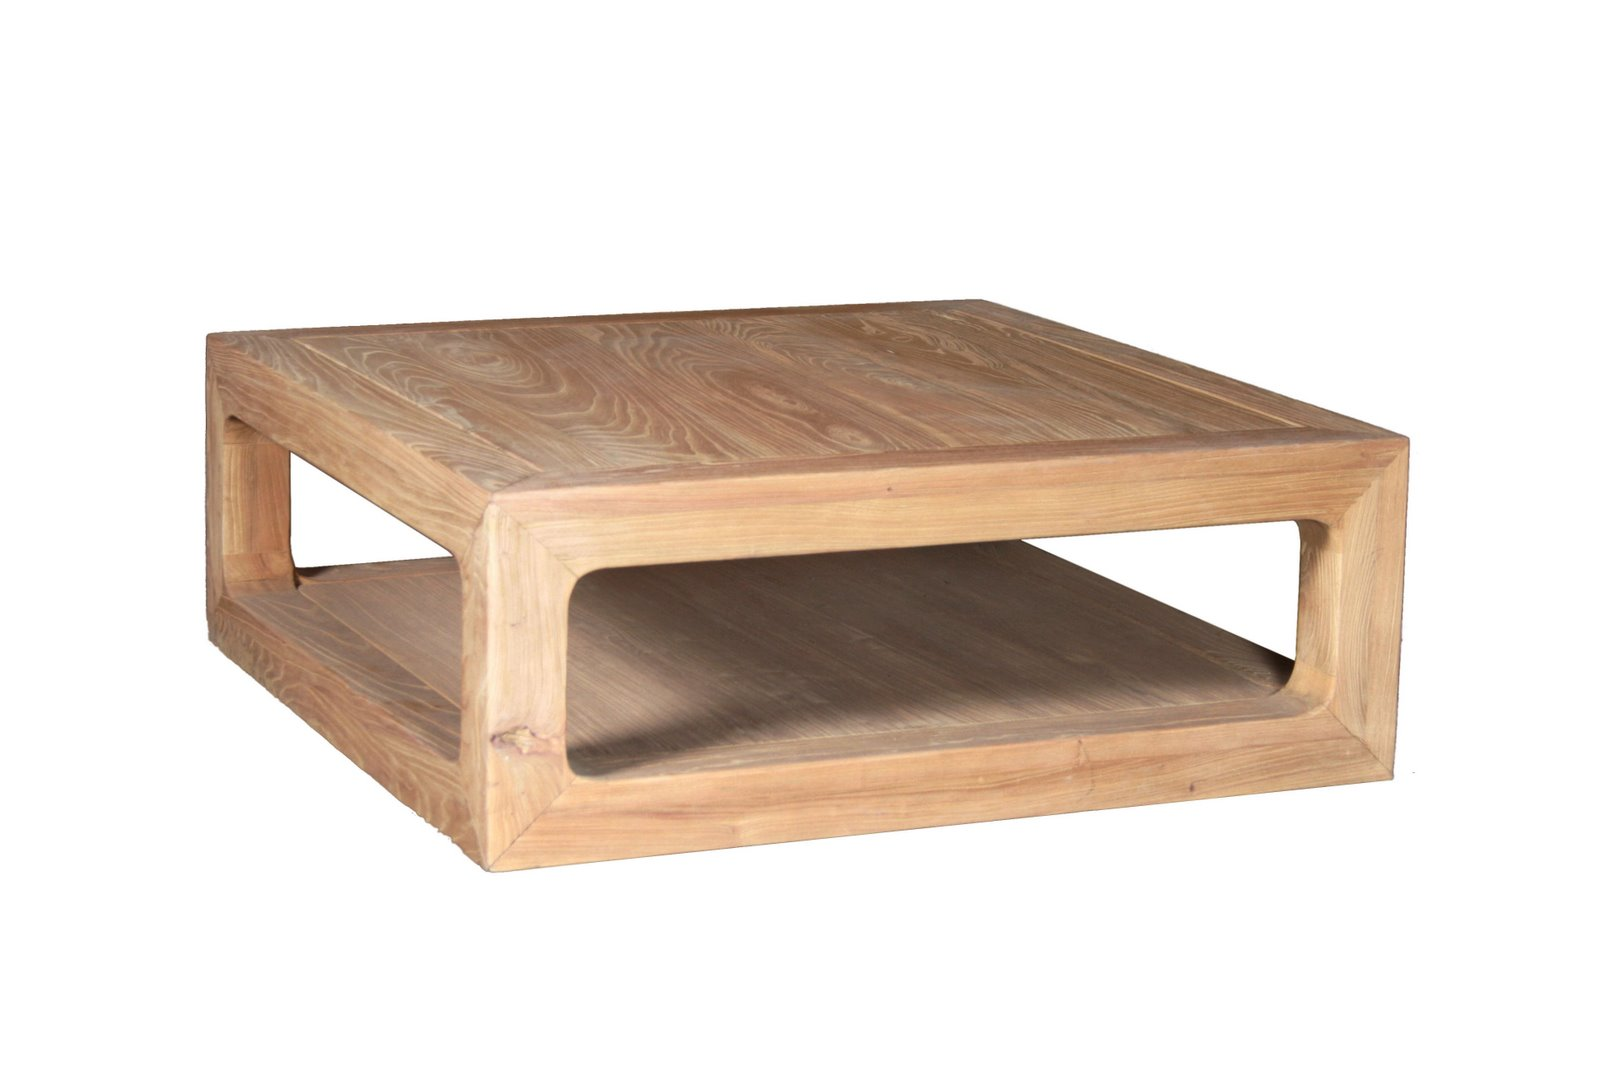 wooden coffee table design ideas photo 2 - Coffee Table Design Ideas